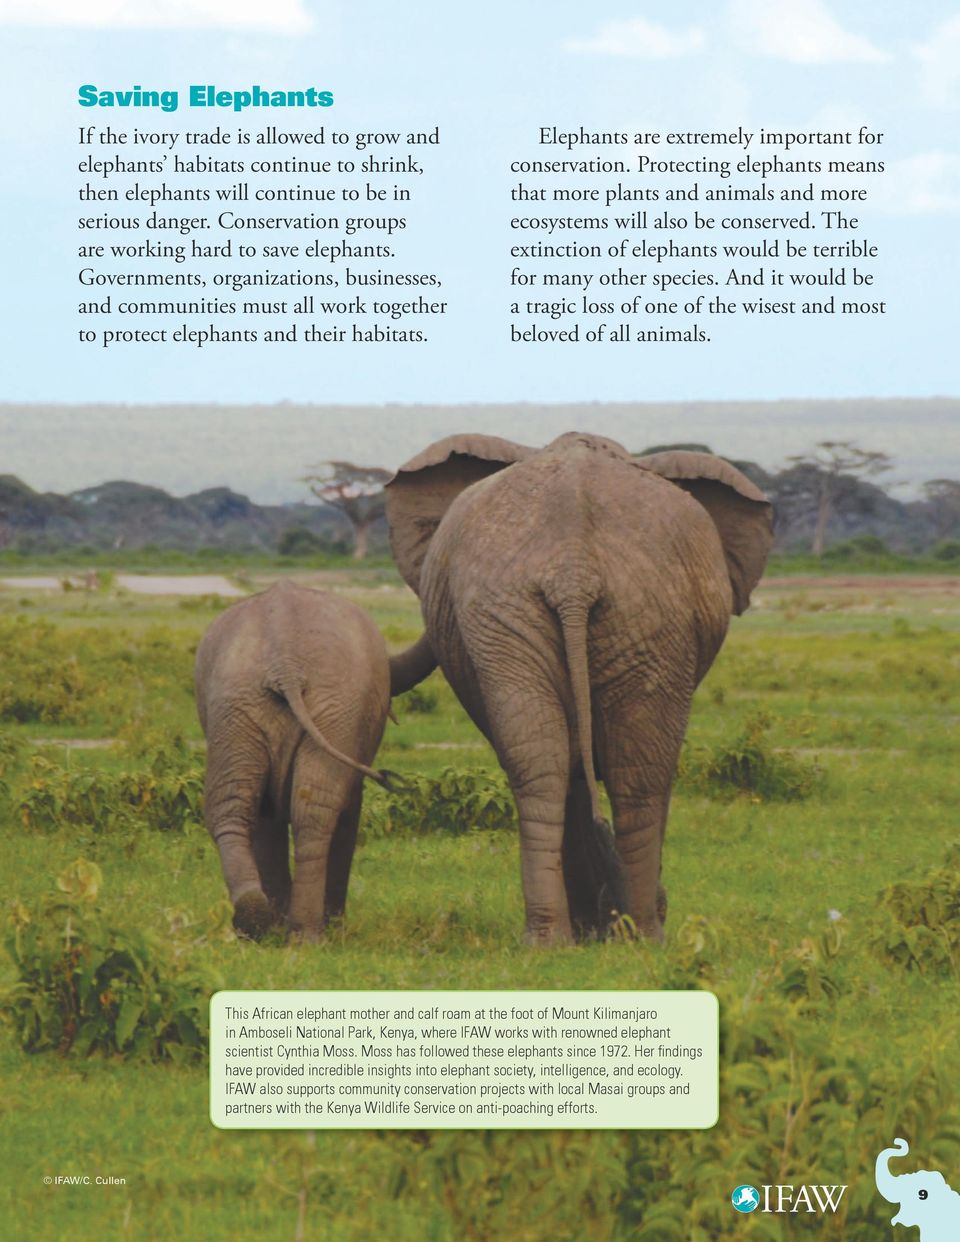 Elephants are extremely important for conservation. Protecting elephants means that more plants and animals and more ecosystems will also be conserved.